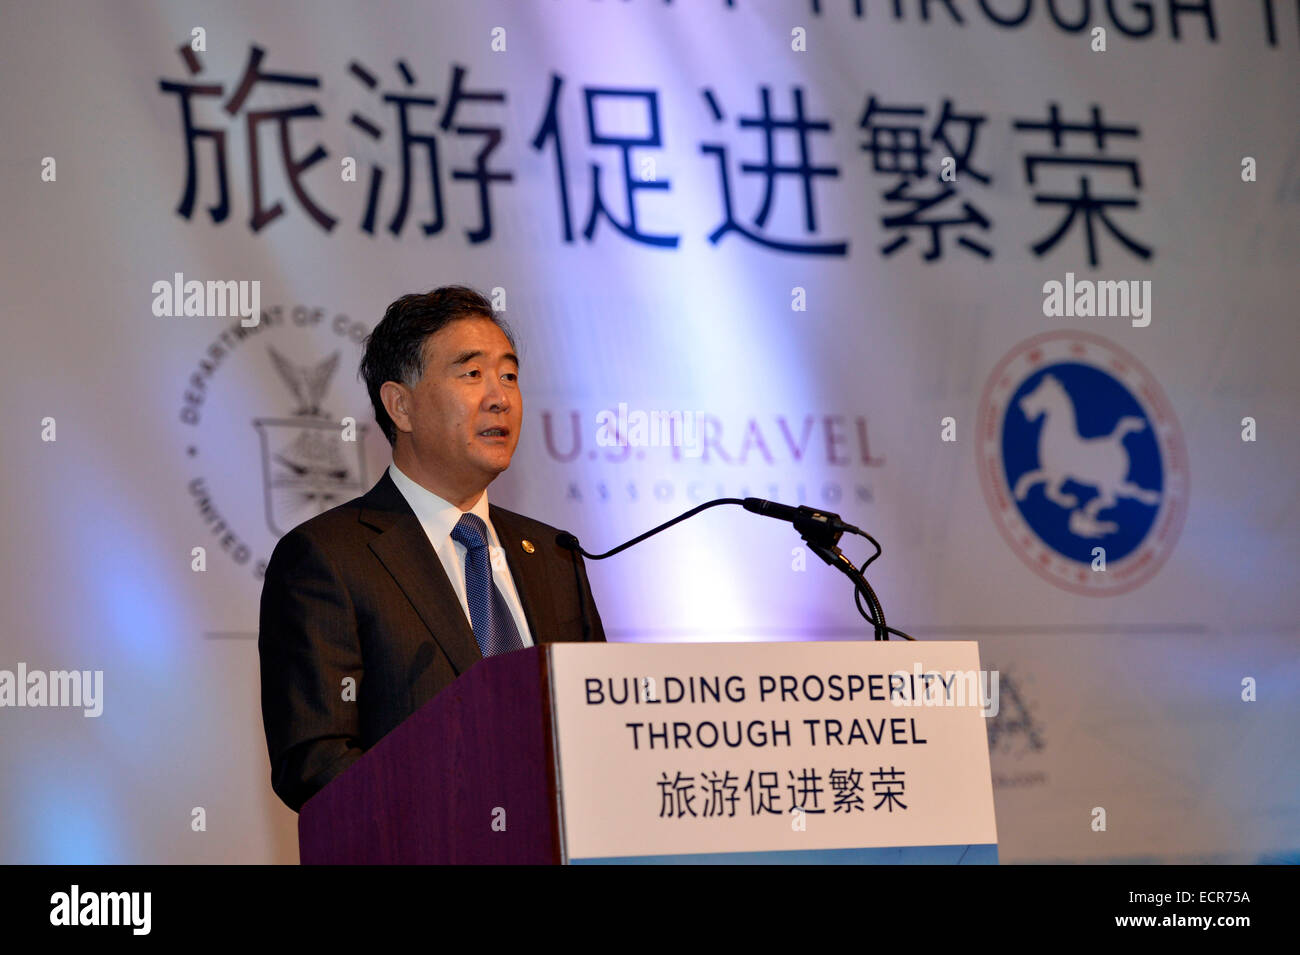 Chicago, USA. 17th Dec, 2014. Chinese Vice Premier Wang Yang addresses a forum on China-U.S. tourism cooperation Stock Photo